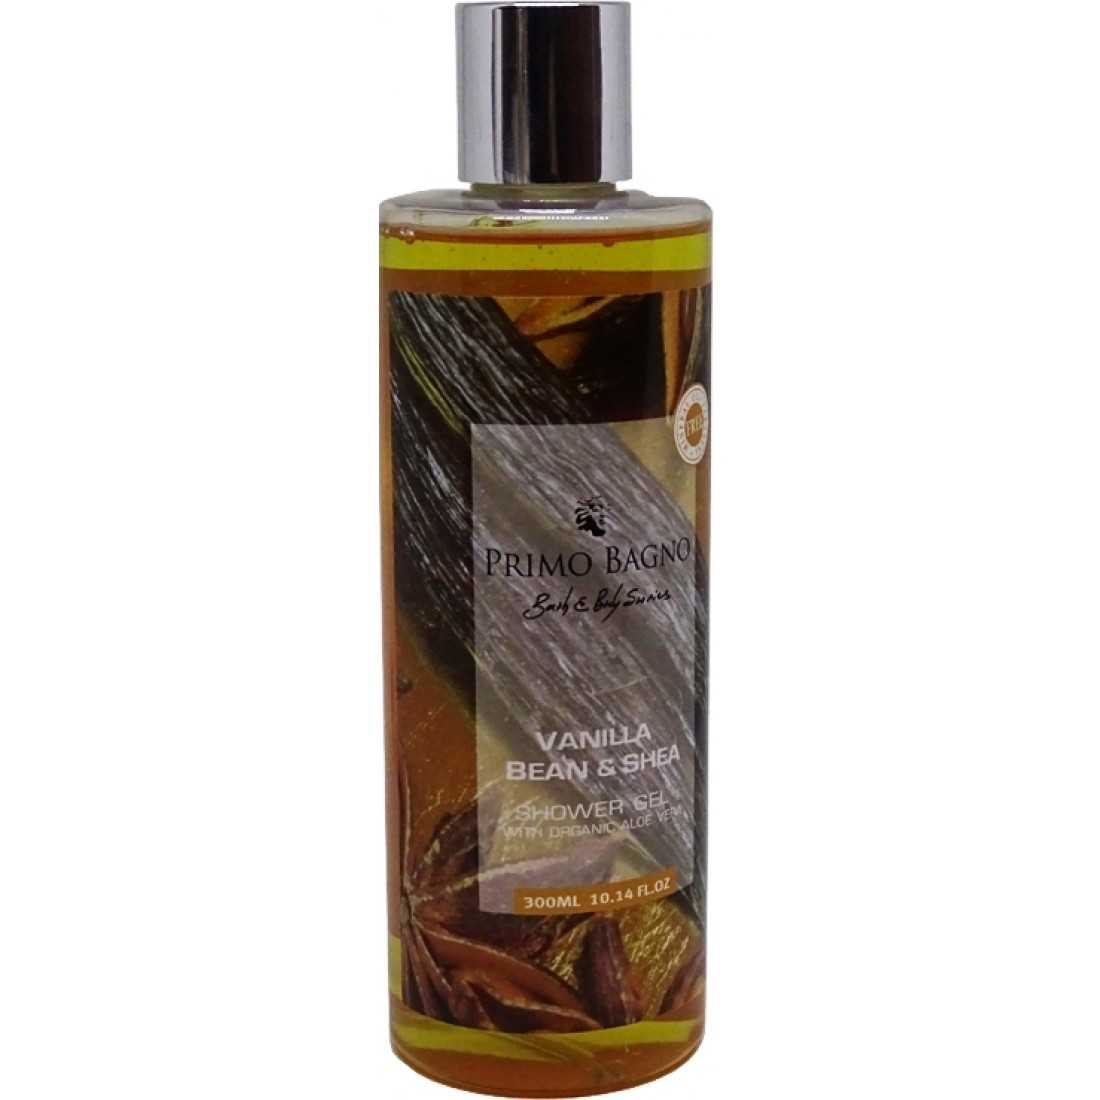 Primo Bagno - Shower Gel Vanilla Bean & Shea (300ml)